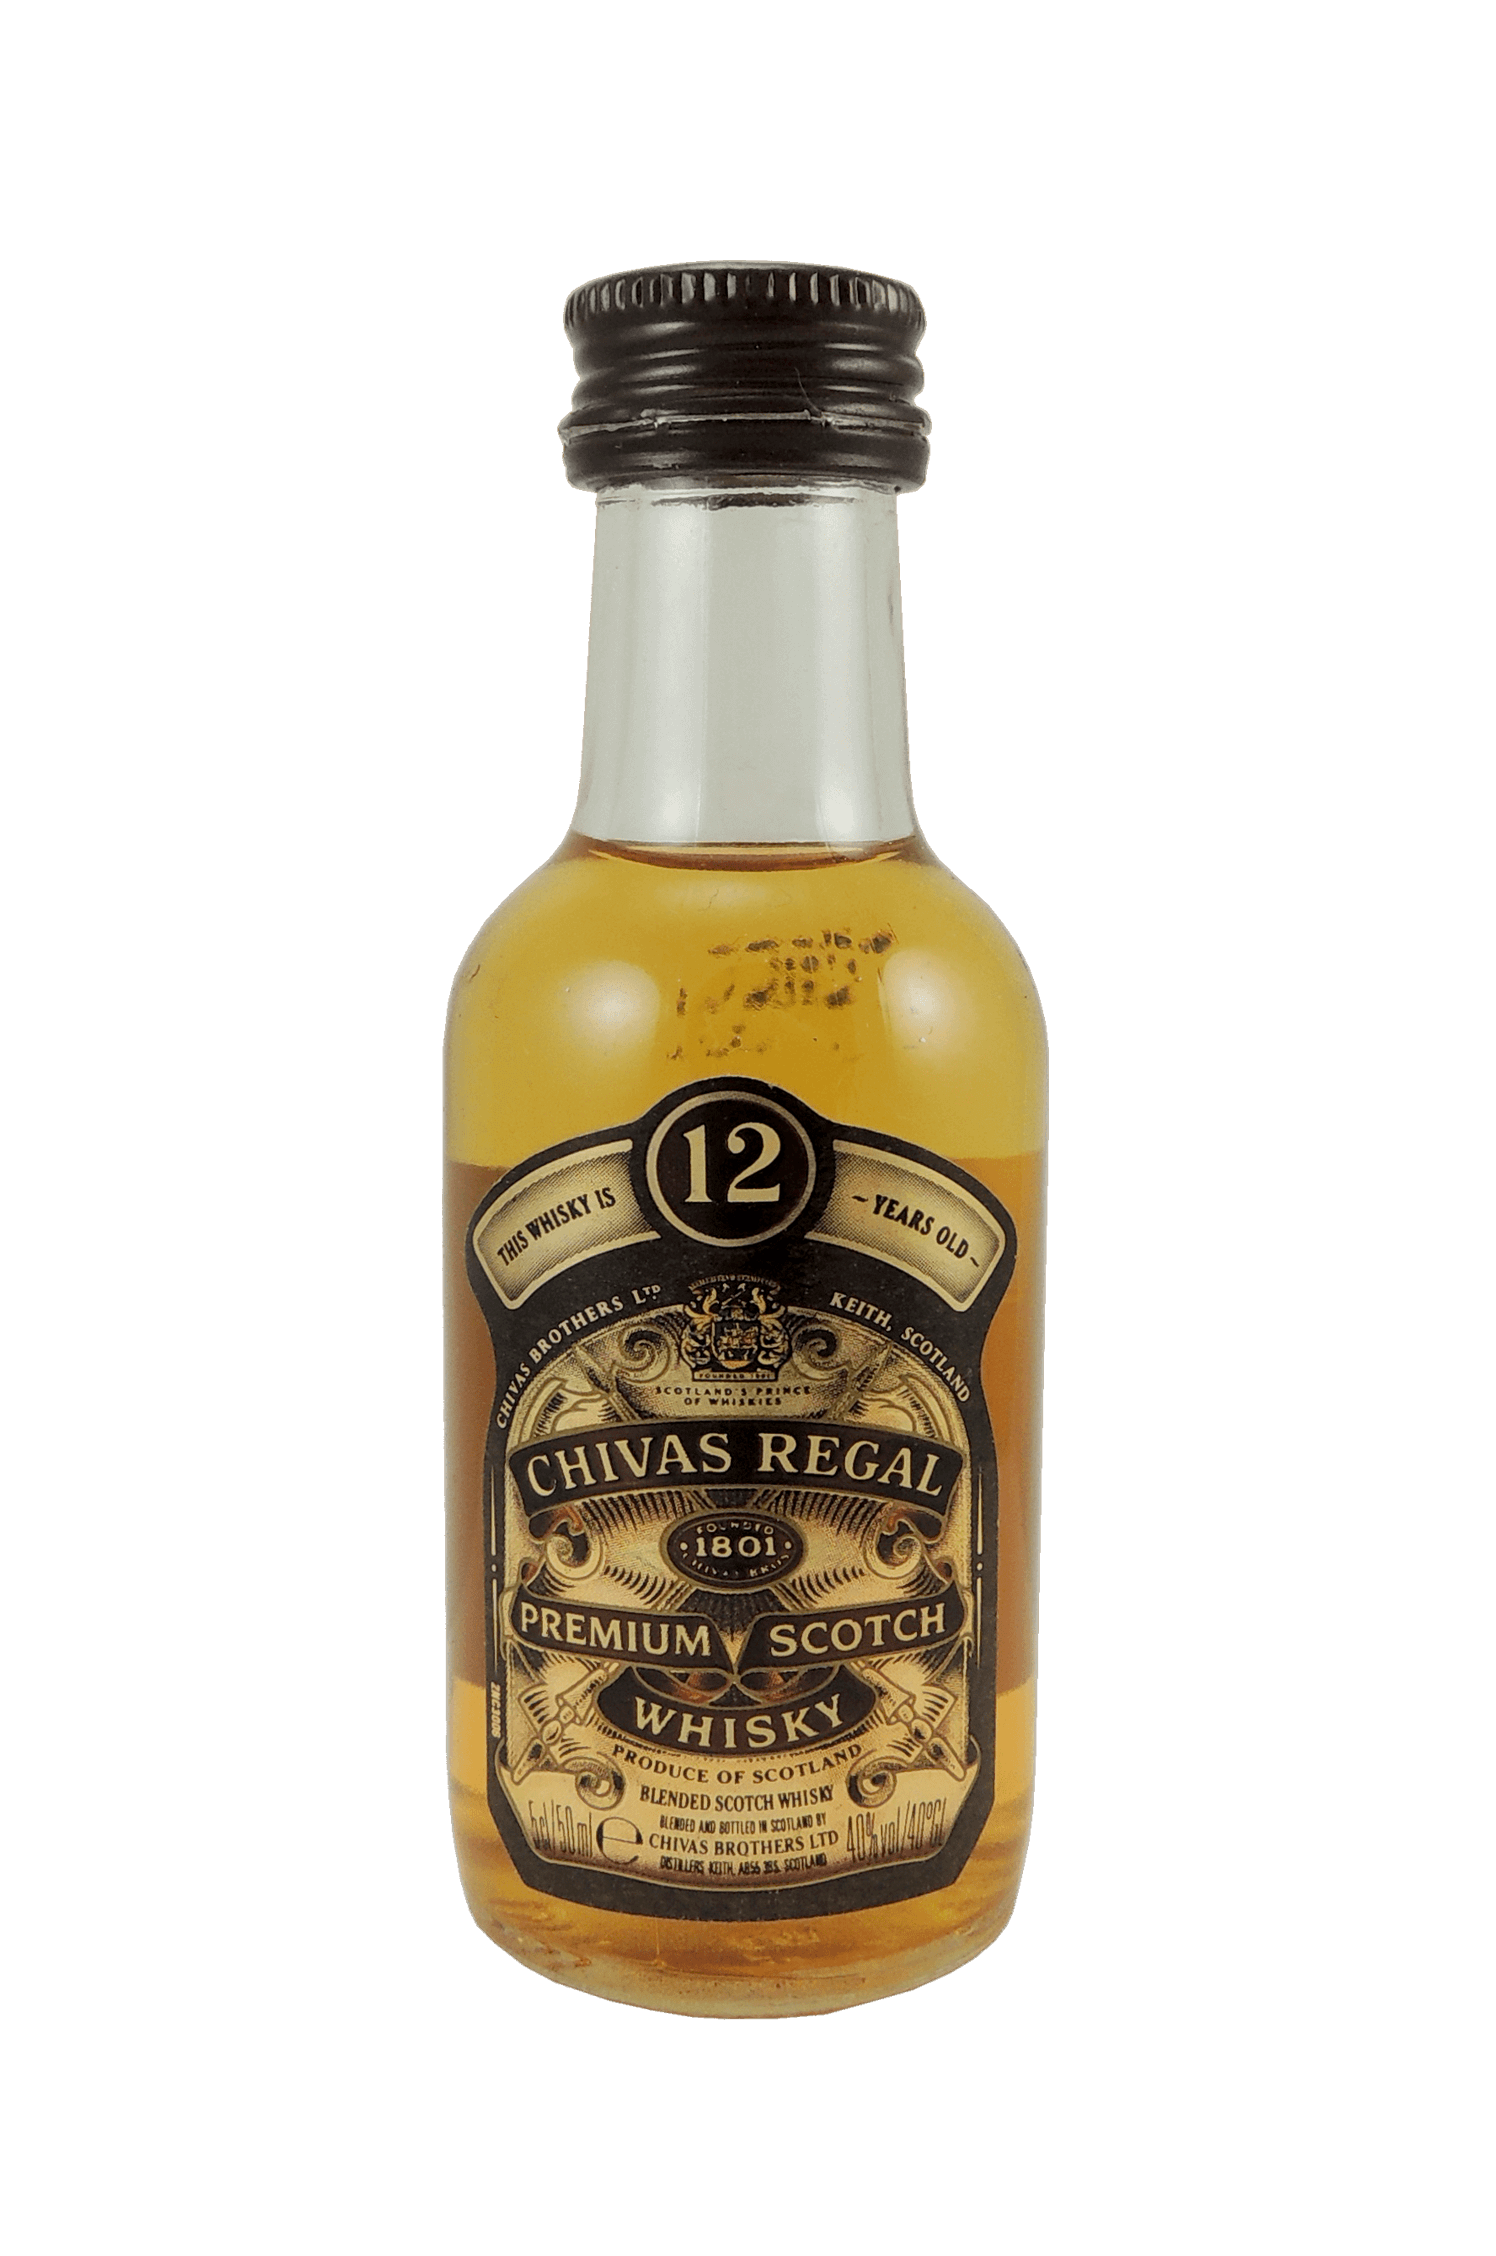 Chivas Regal 12 Whisky